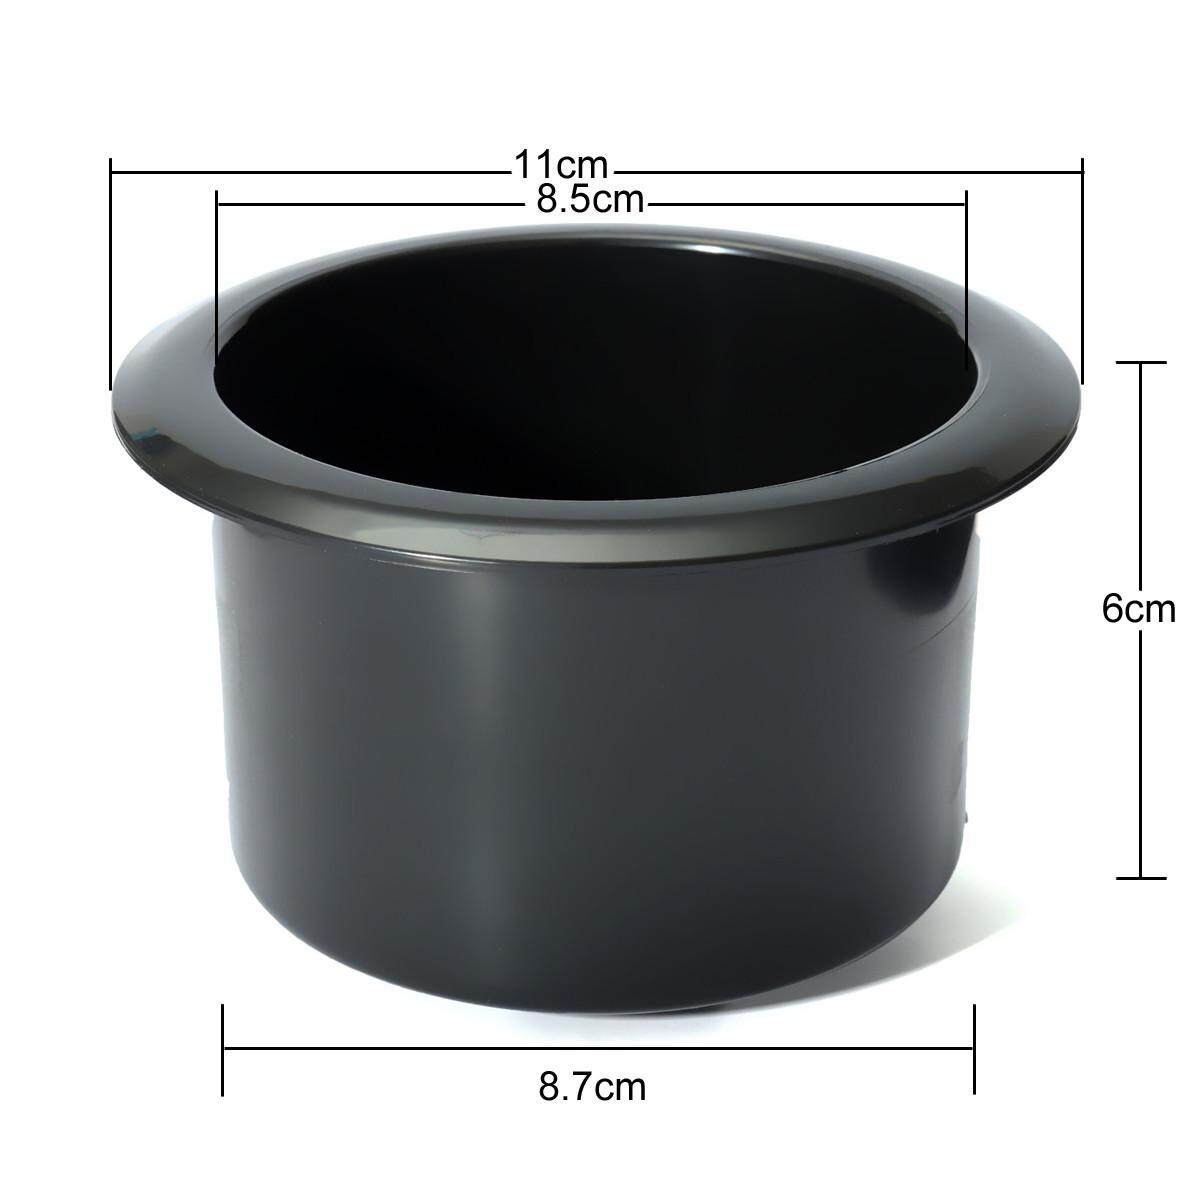 1pcs Cup Holder For Boat Rv Sectional Couch Recliner Sofa Furniture Poker Table - Intl By Freebang.